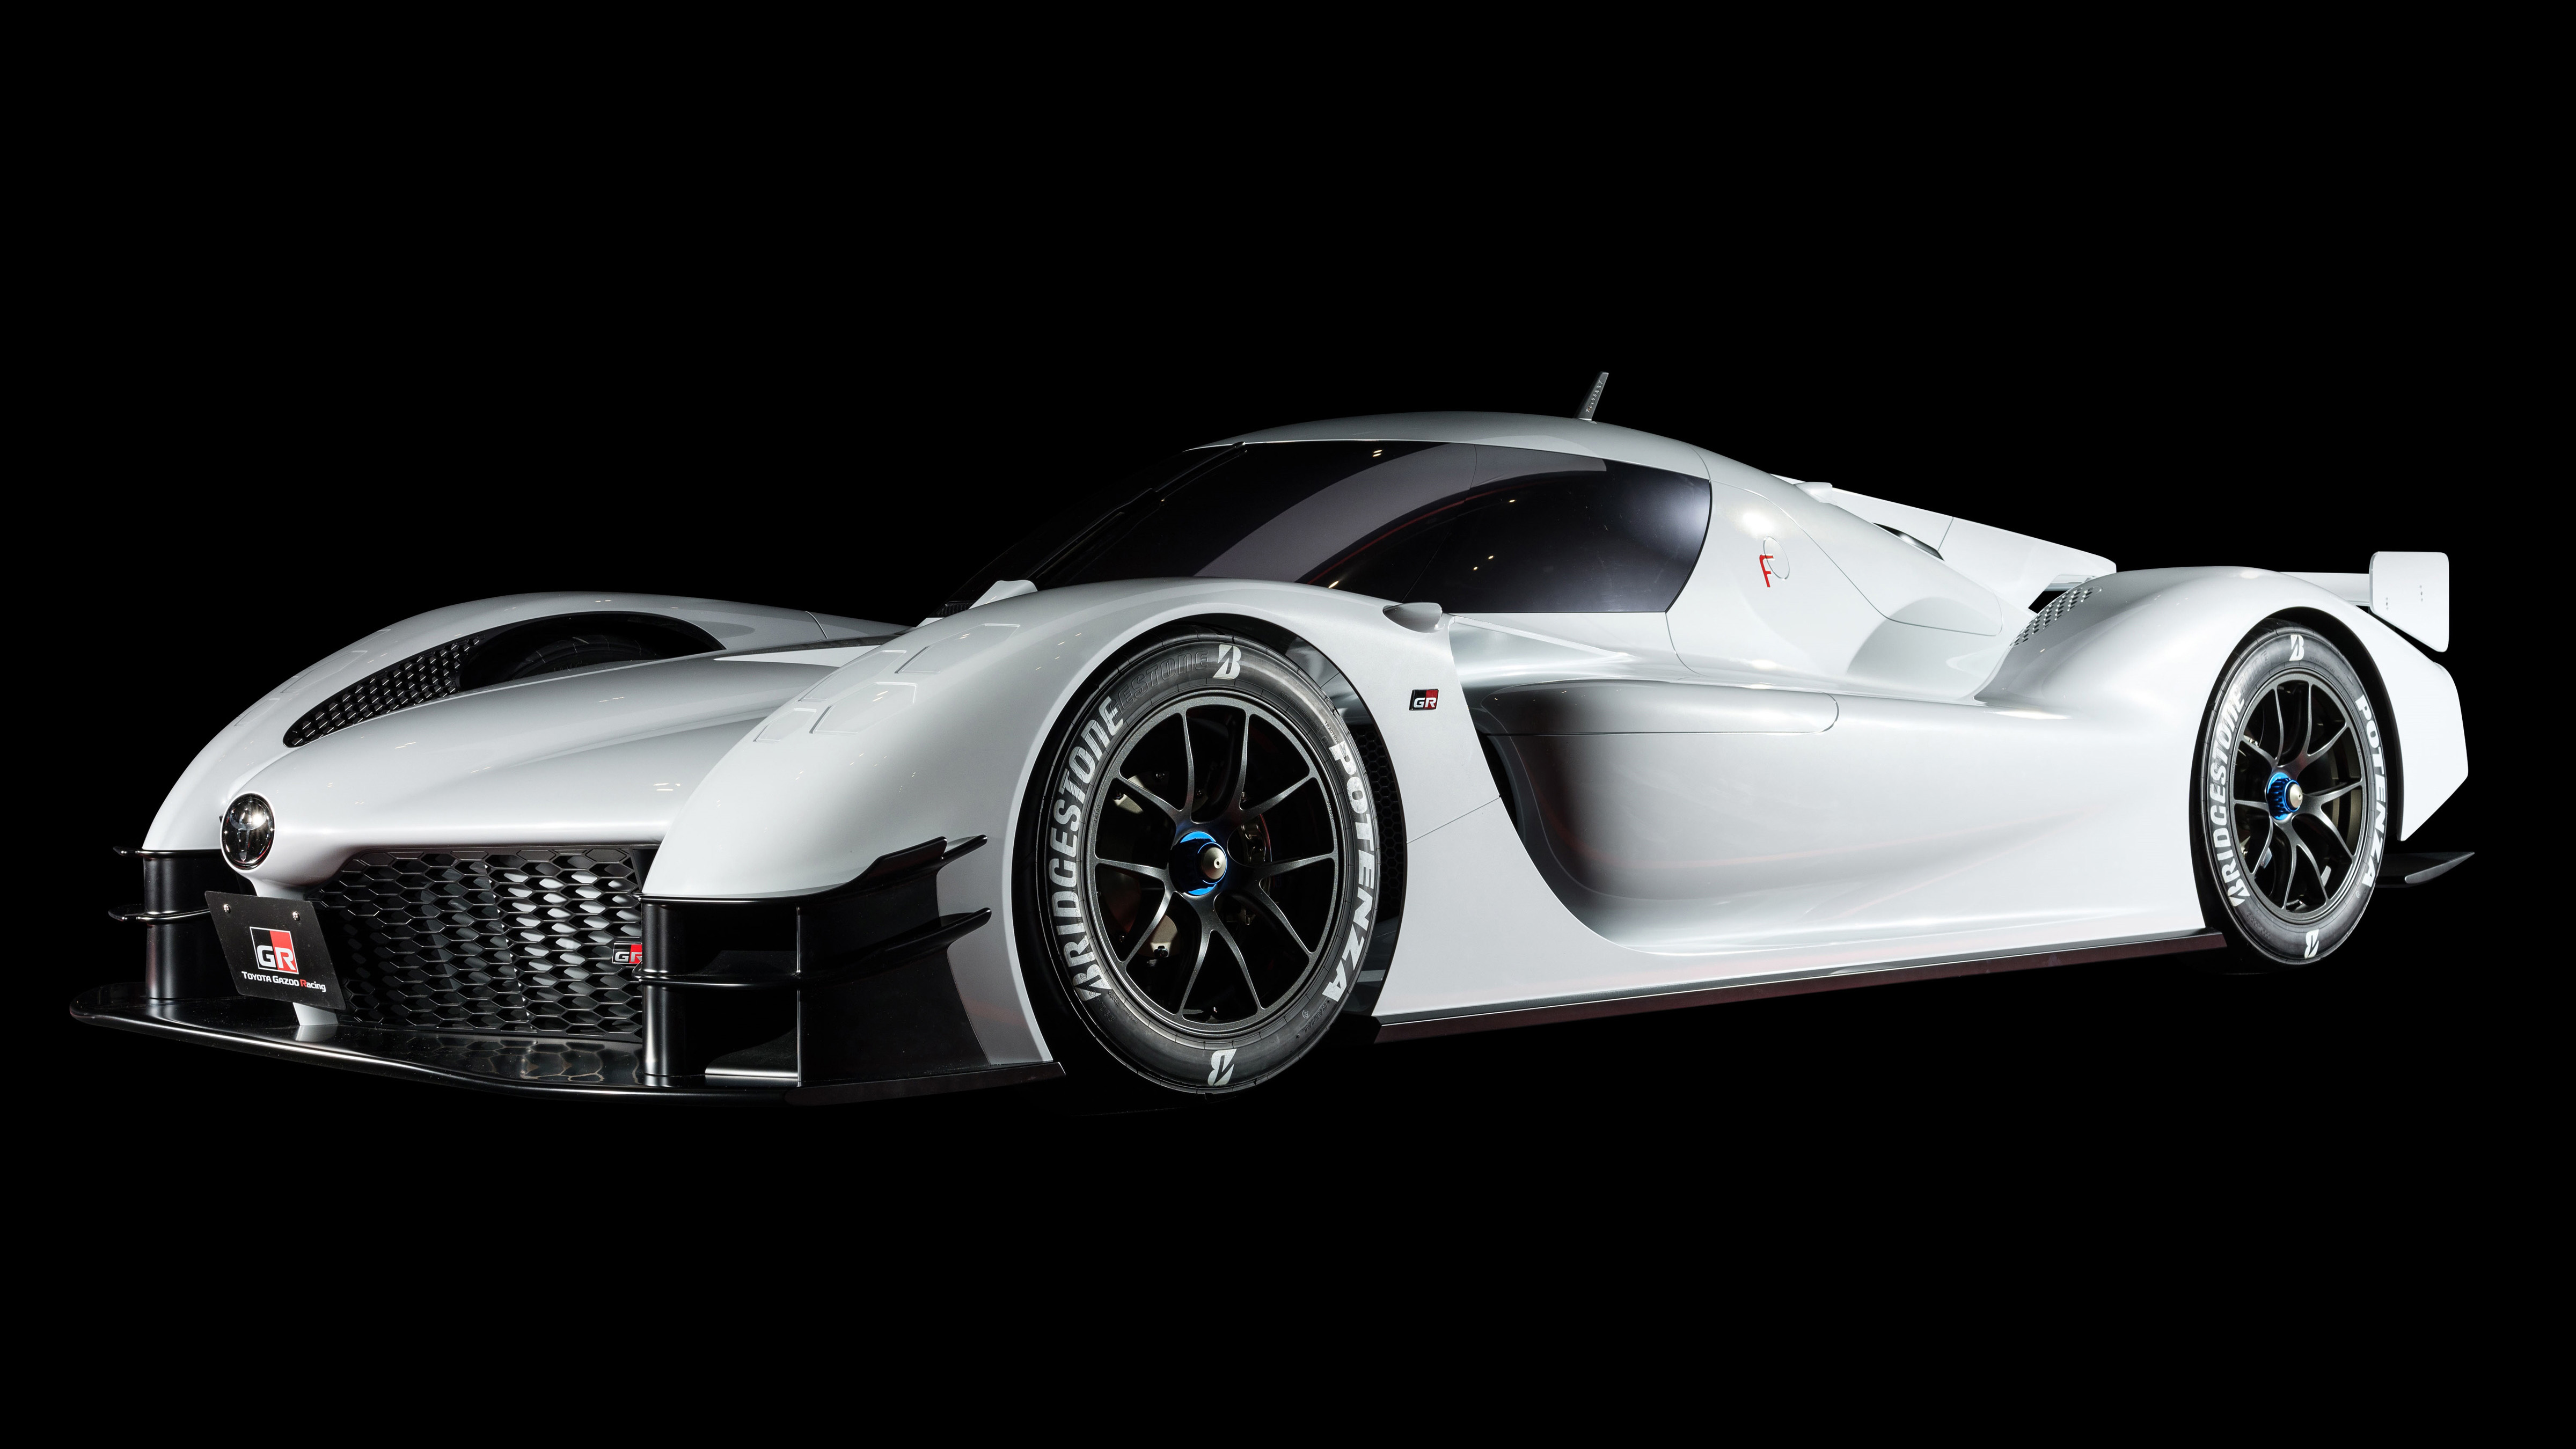 Toyota Confirms 986-HP Hypercar Headed for Production